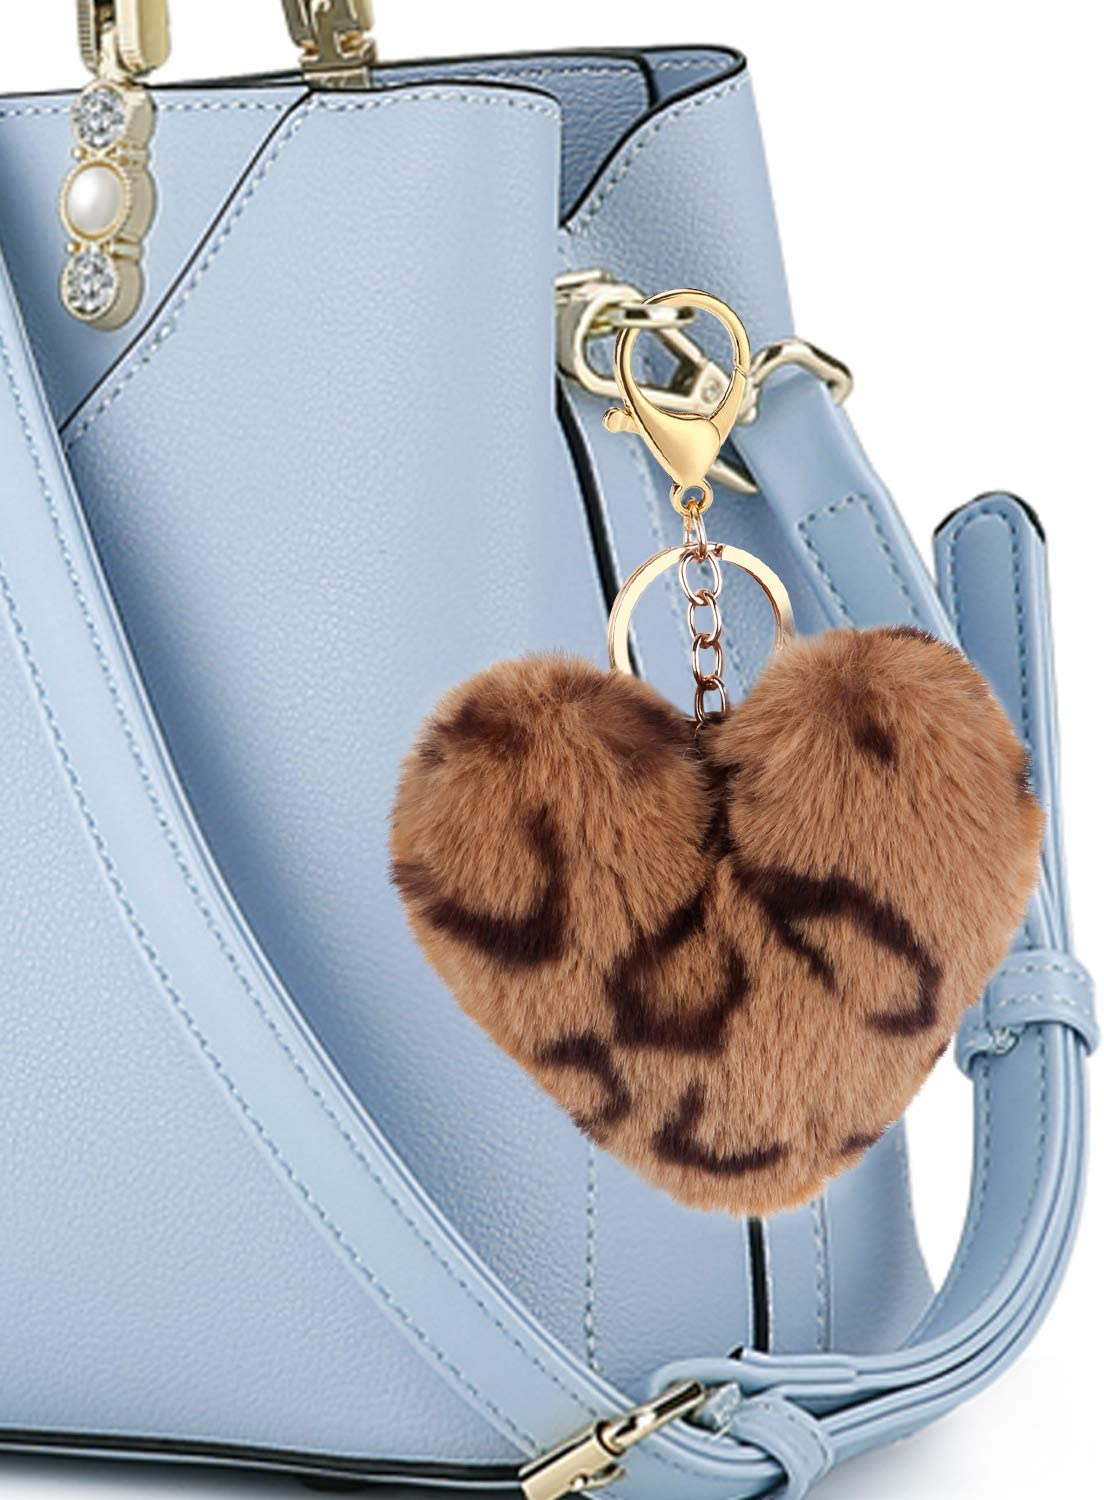 Auranso Pom Pom Keyrings Fluffy Keyring Soft Plush Heart Shape Charm Ring Keyfob Balls Bag Car Key Pendant Keychain Decoration Black